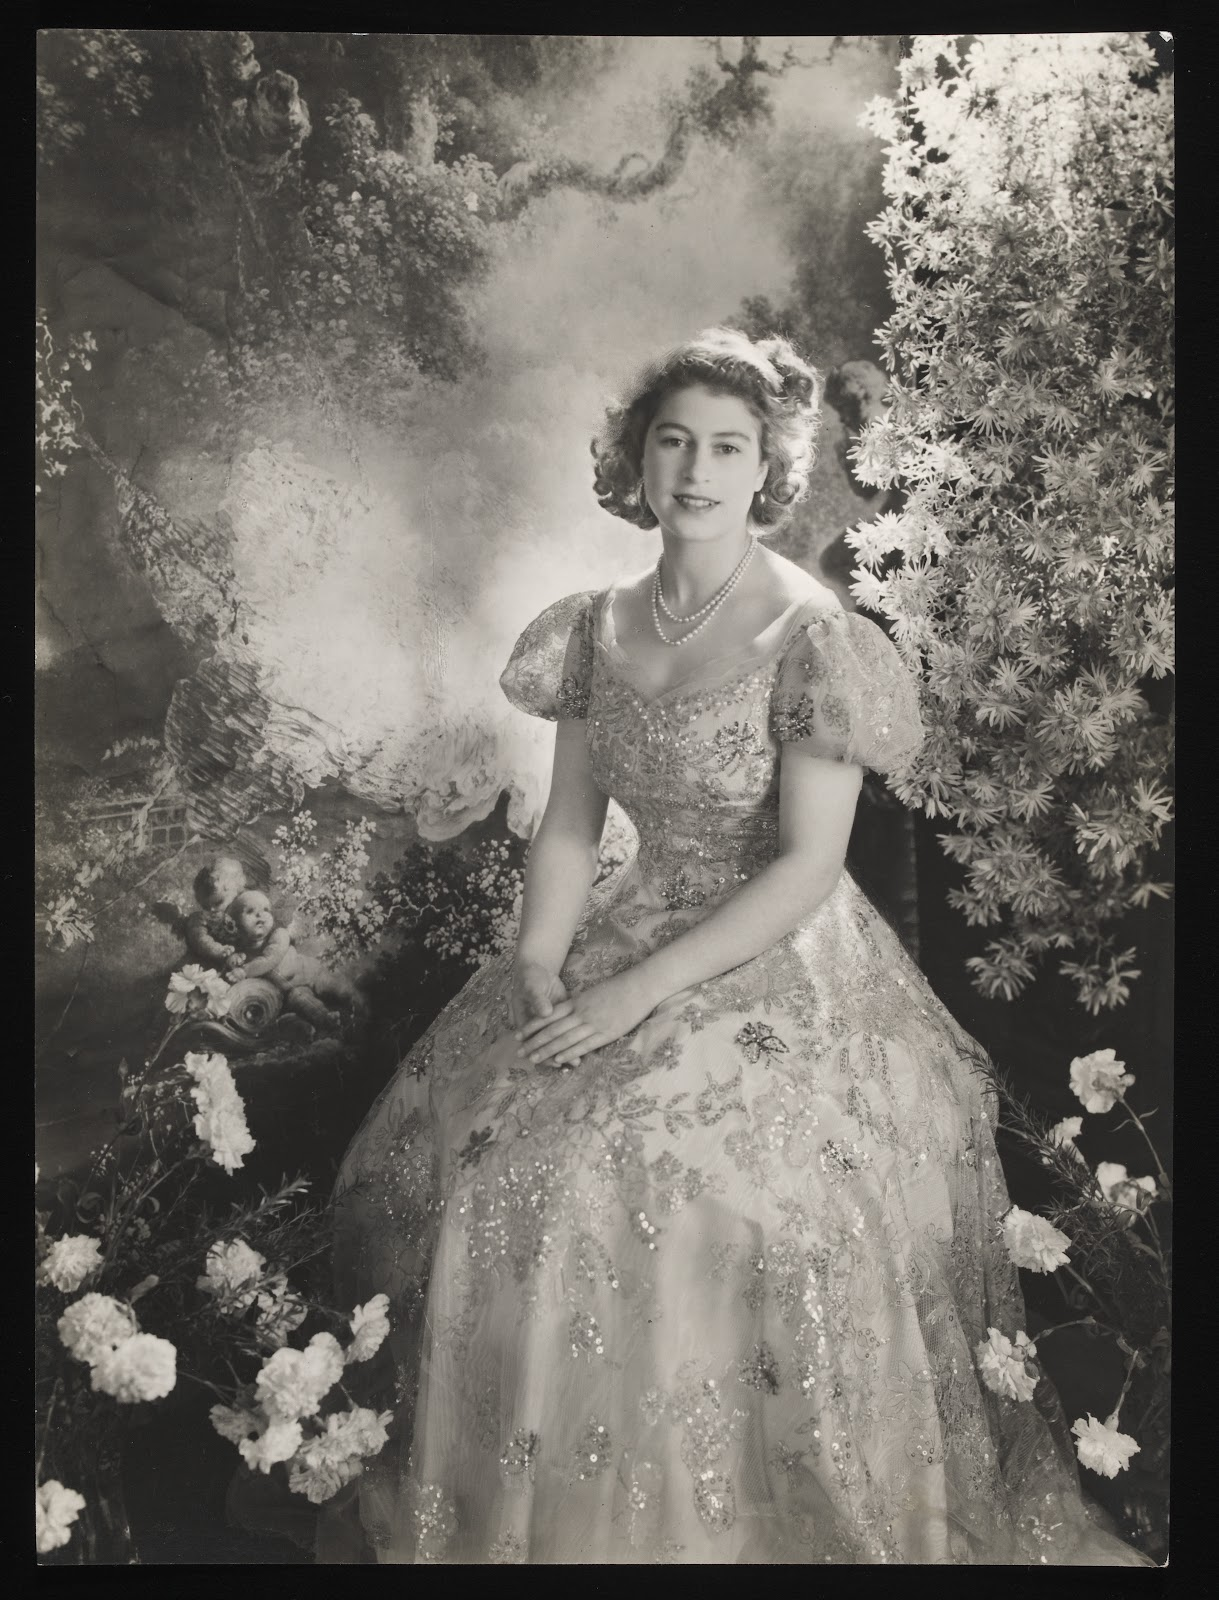 Cecil_Beaton_Princess_Elizabeth_at_Buckingham_Palace_March_1945.jpg